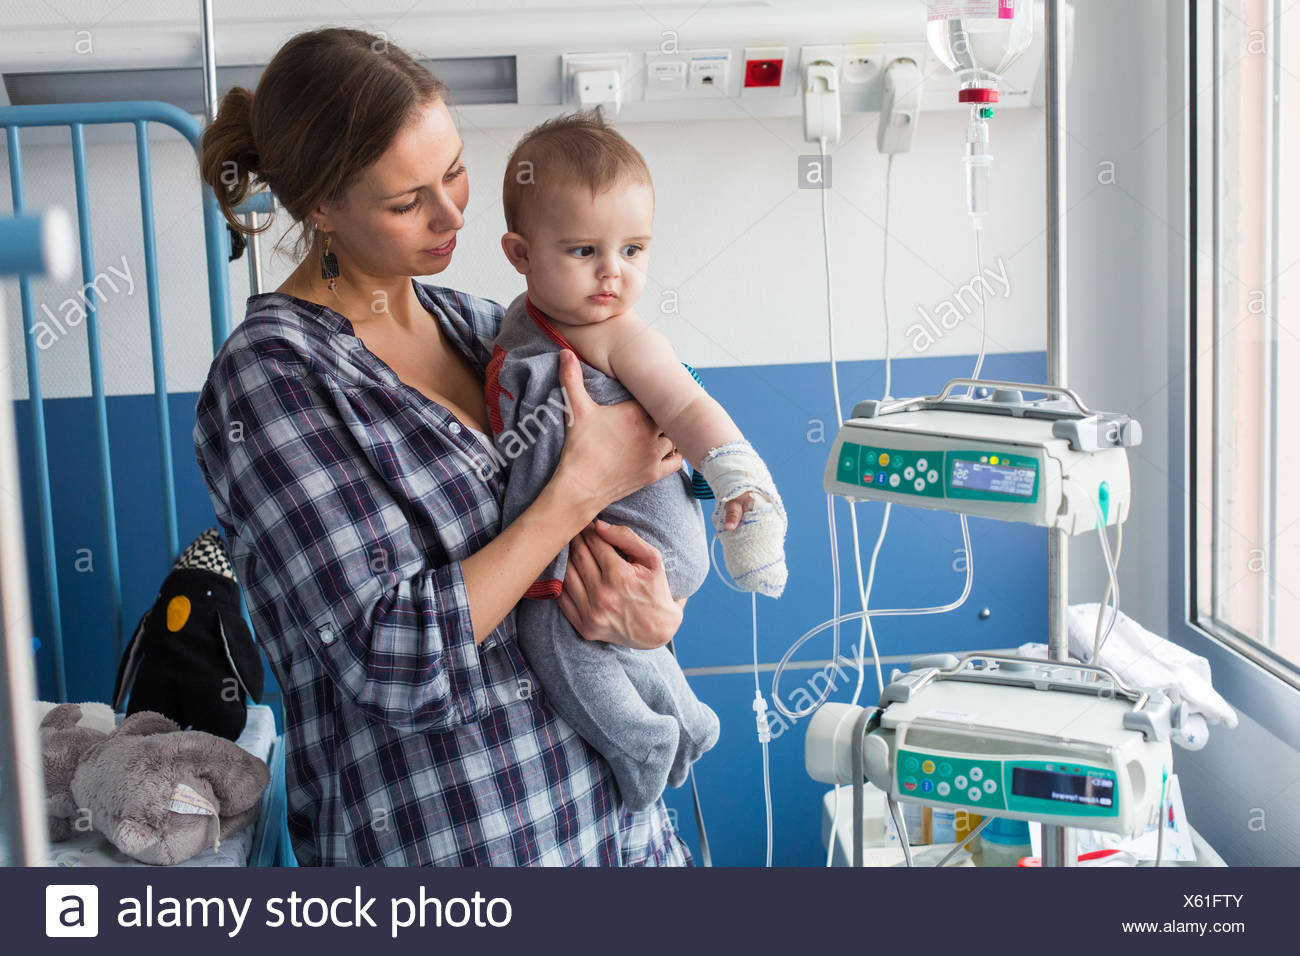 Baby affected by a urinary tract infection (pyelonephritis) hospitalized in the pediatric department of Angoulême hospital, France. - Stock Image